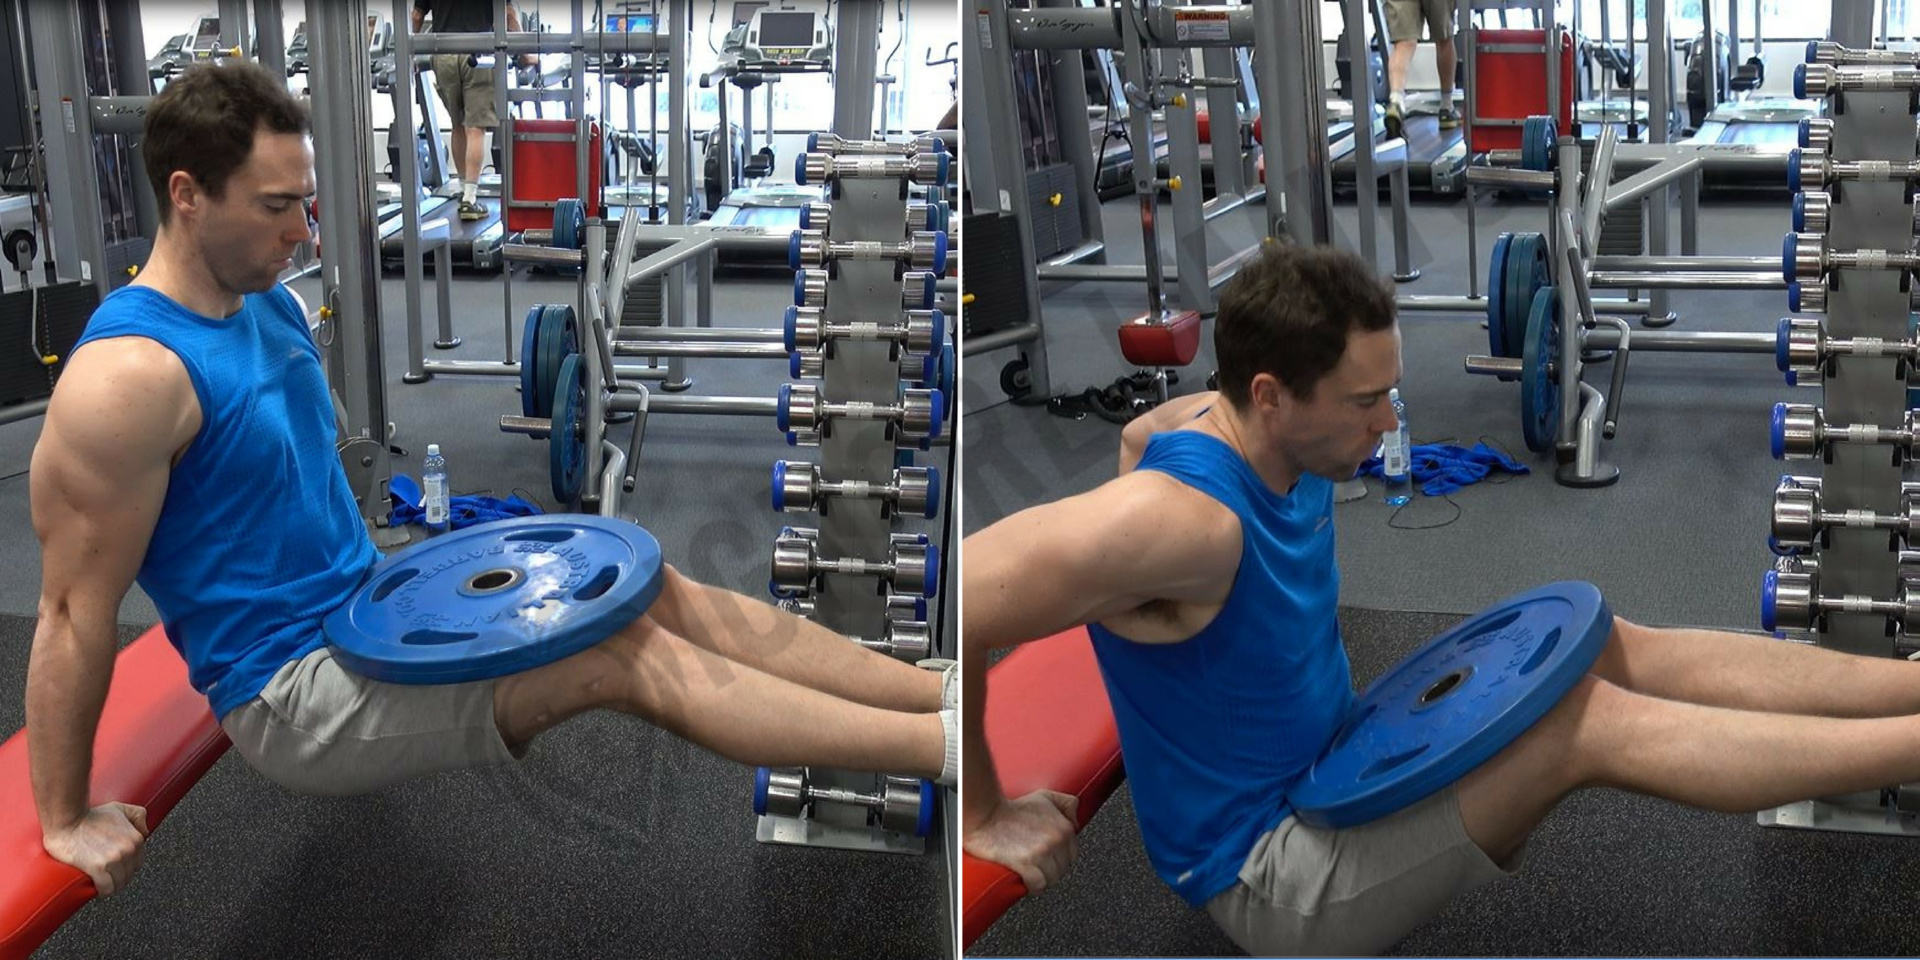 How To: Weighted Bench Dips - Ignore Limits